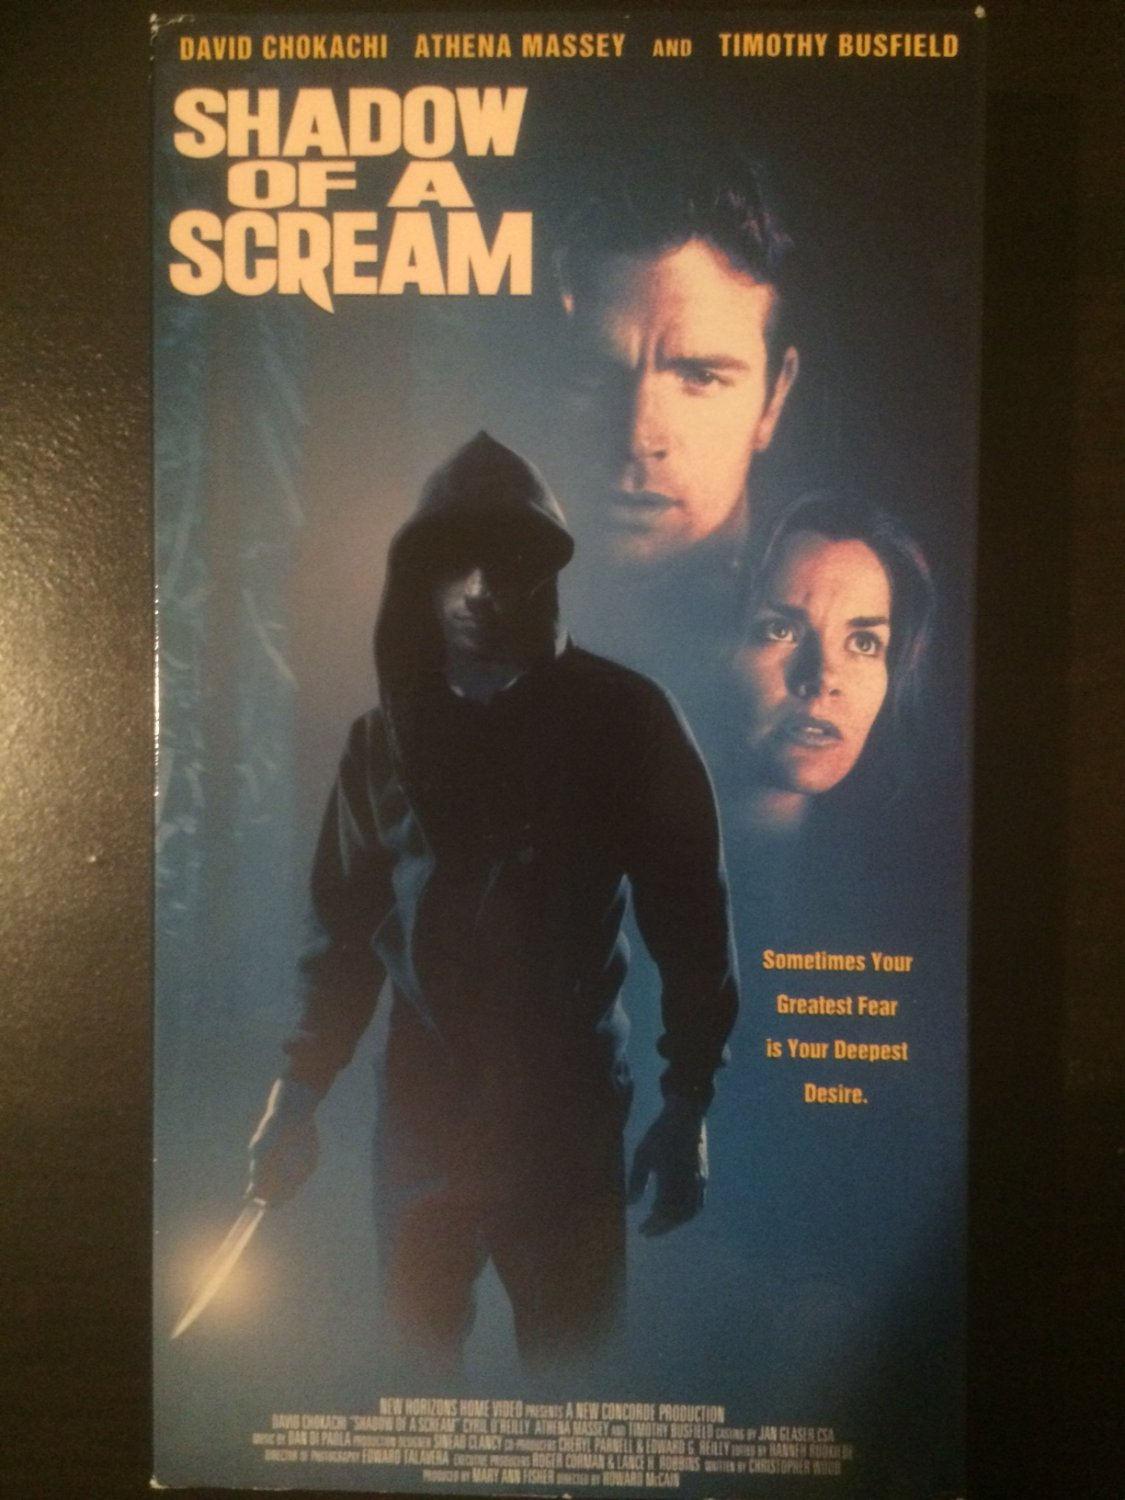 VHS - Shadow of a Scream - Used - NOT ON DVD